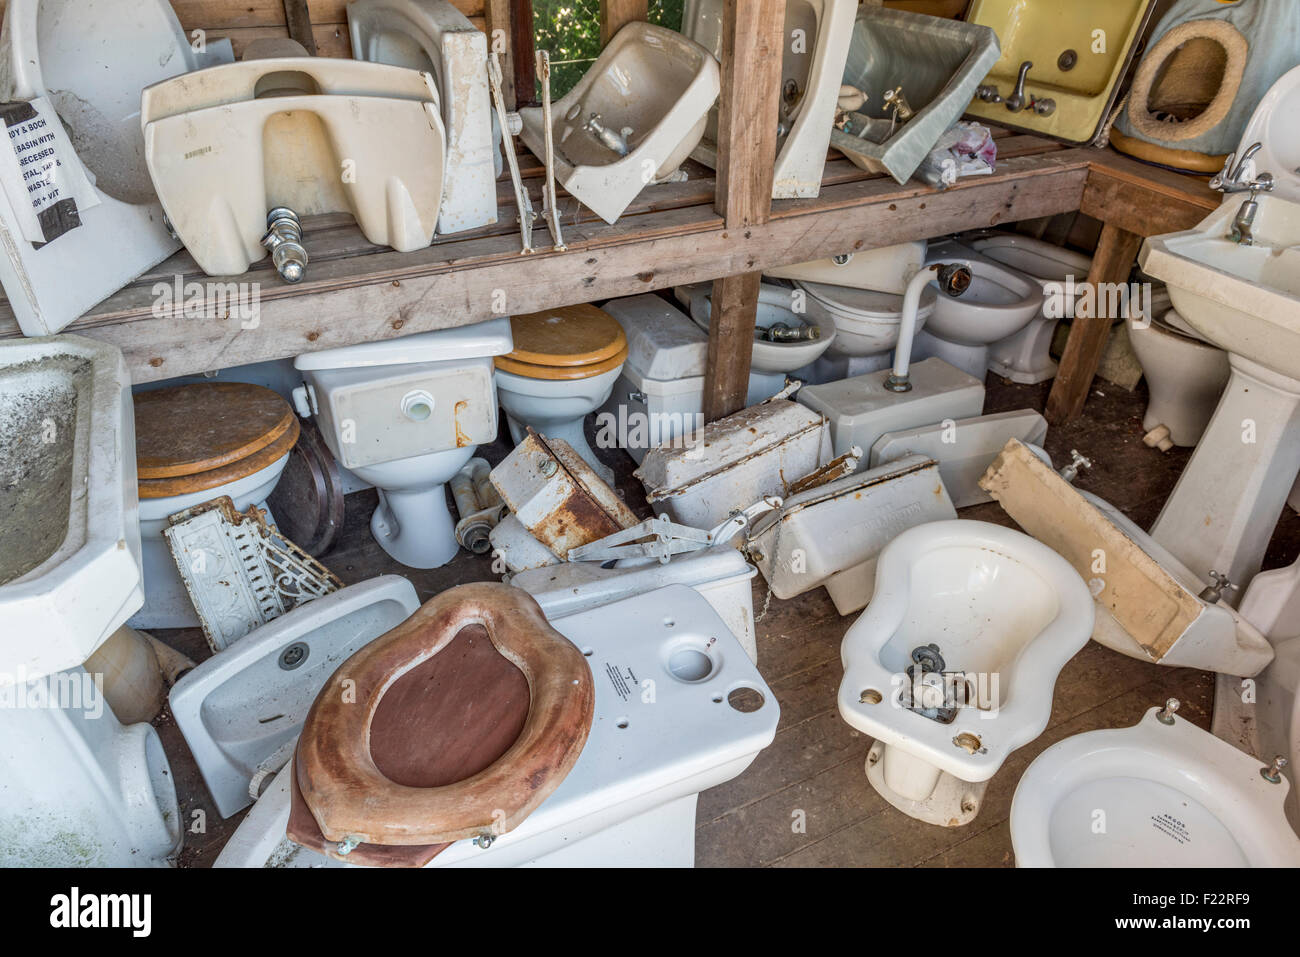 Various bathroom items at an architectural salvage yard in East Sussex, England, UK. - Stock Image